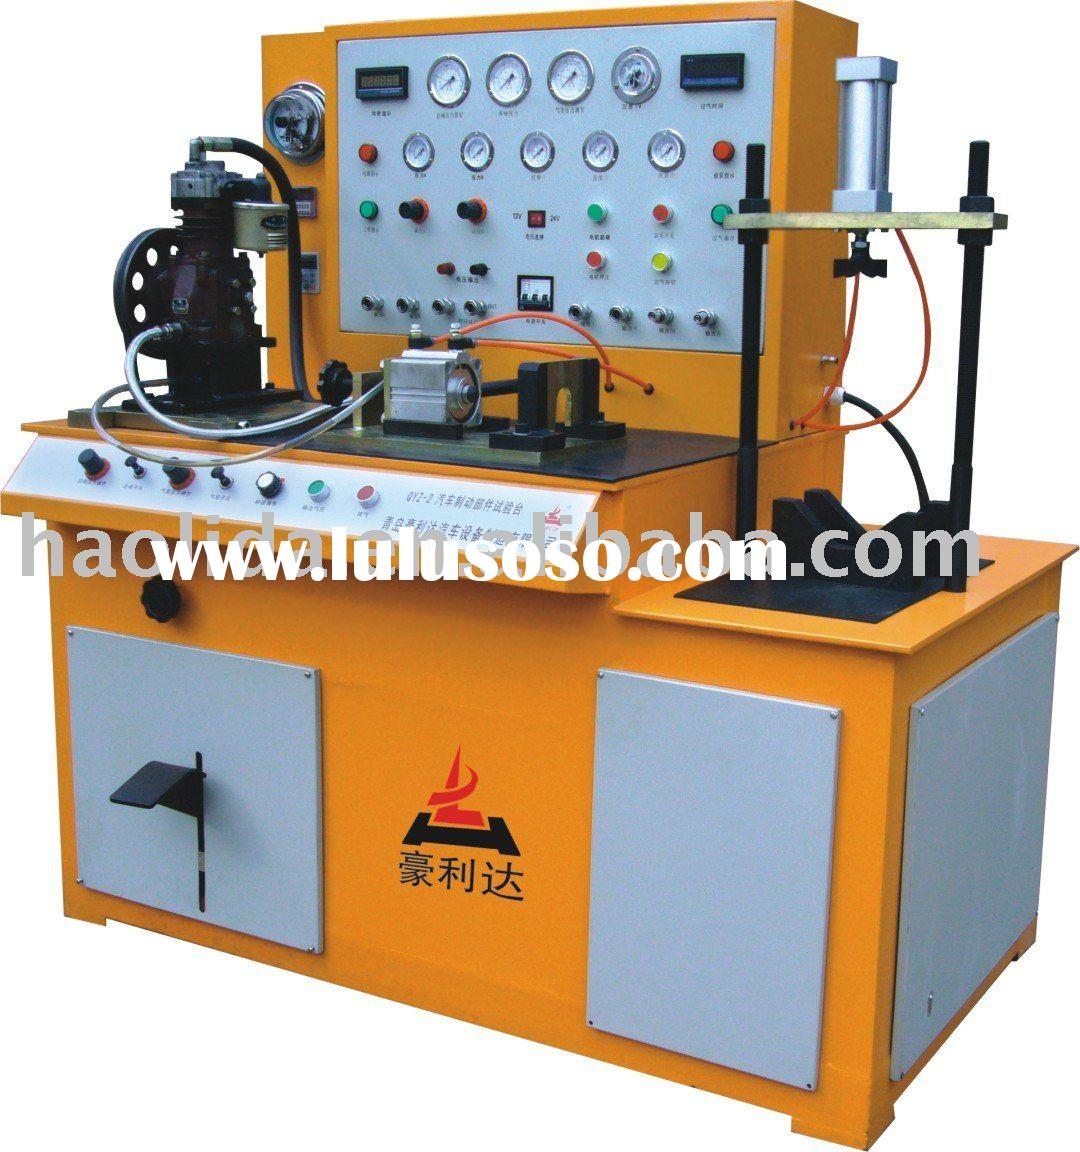 automobile air brake system test bench, Test air compressor, Master valve, Air chamber, Quick releas